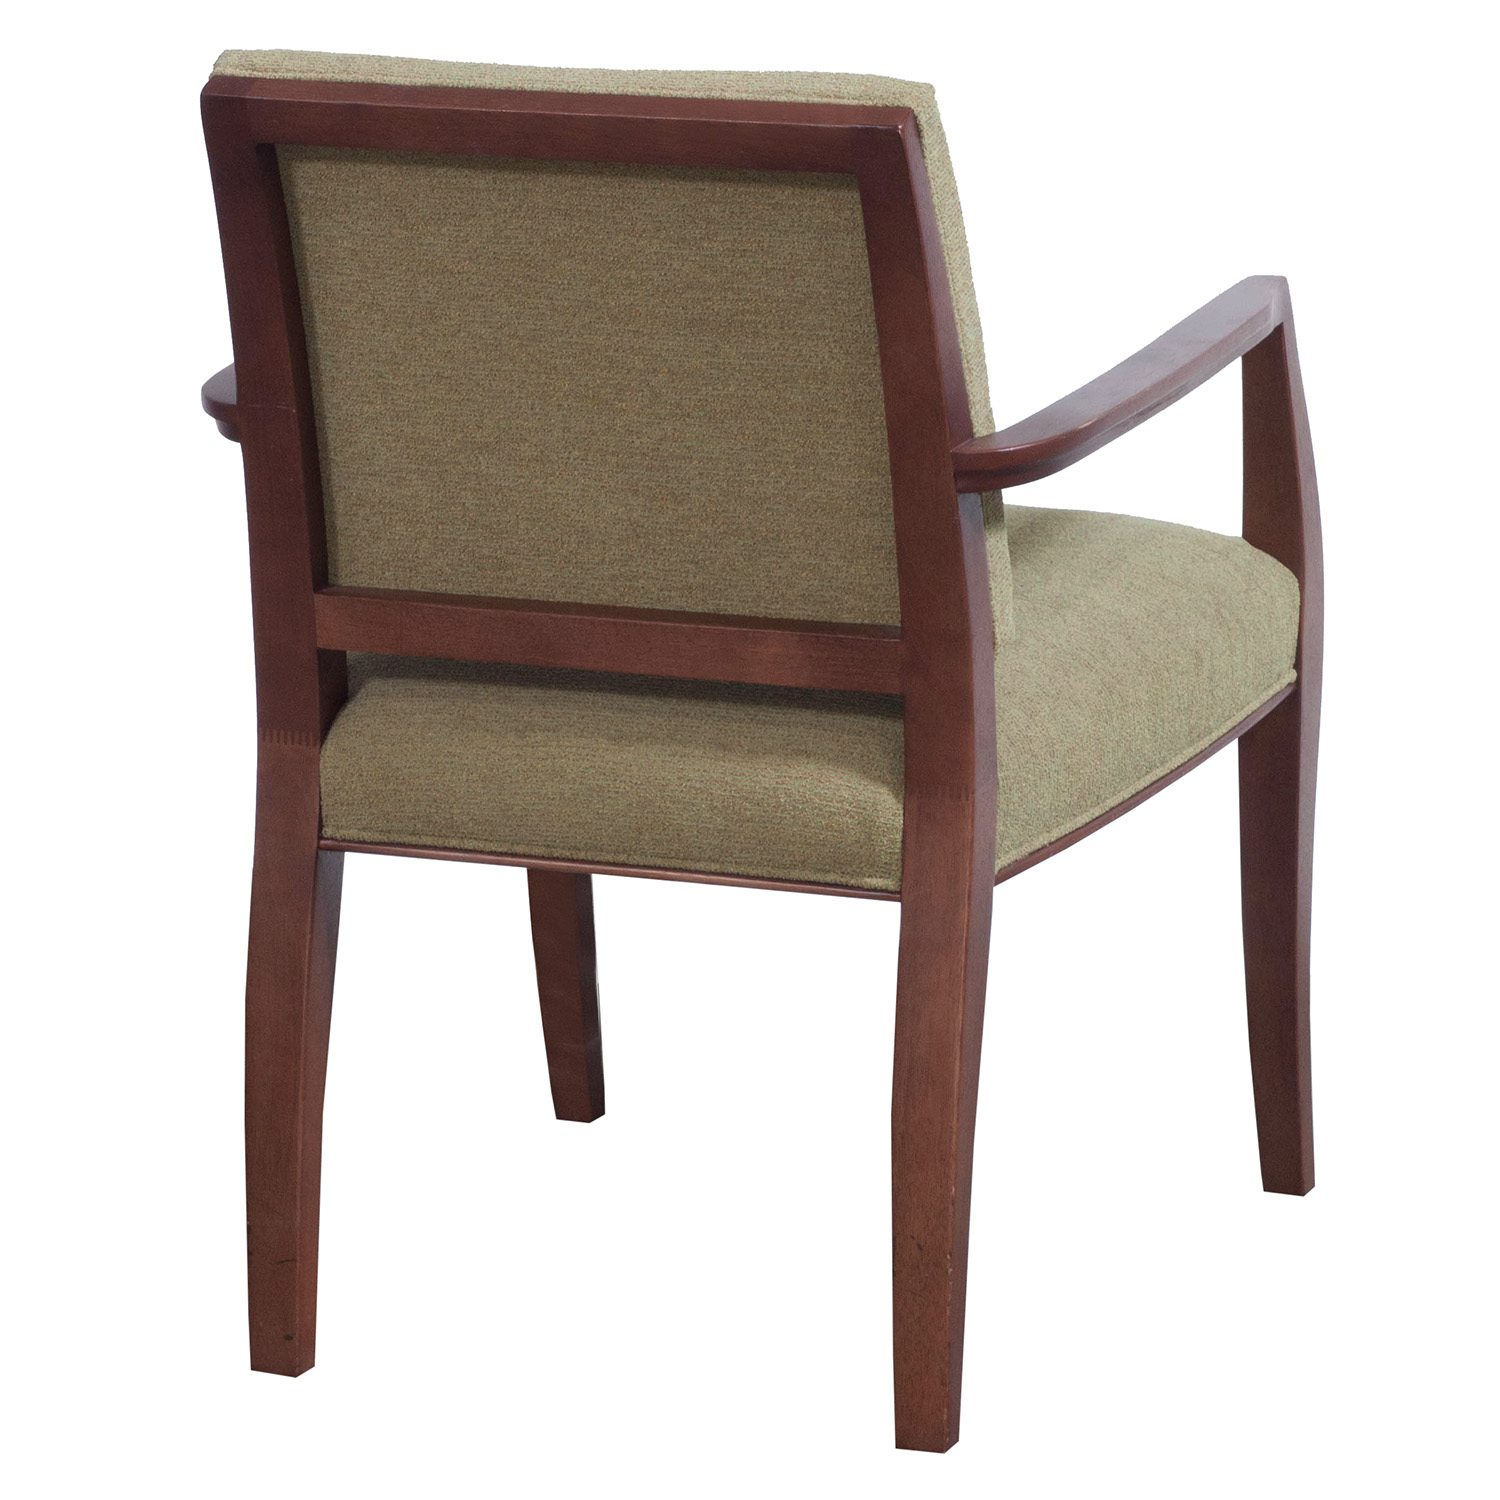 Cherry Chairs Bernhardt Used Dark Cherry Wood Side Chair Green